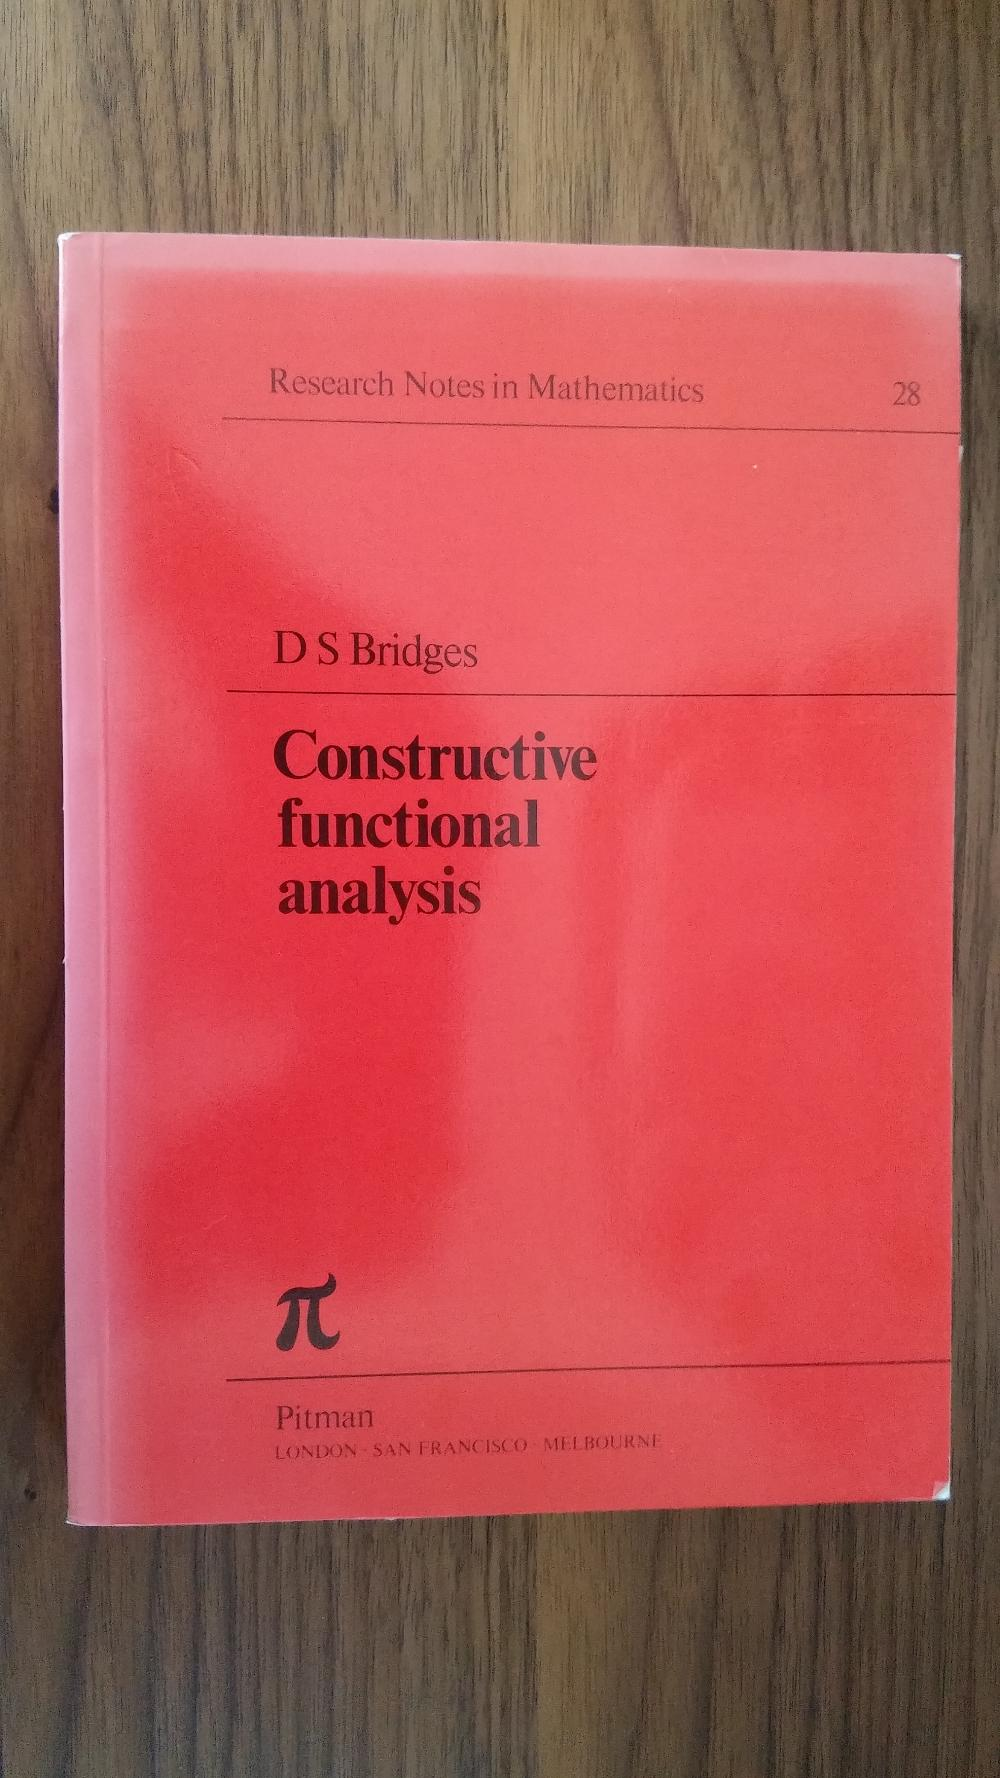 Douglas S  Bridges - My Mathematics